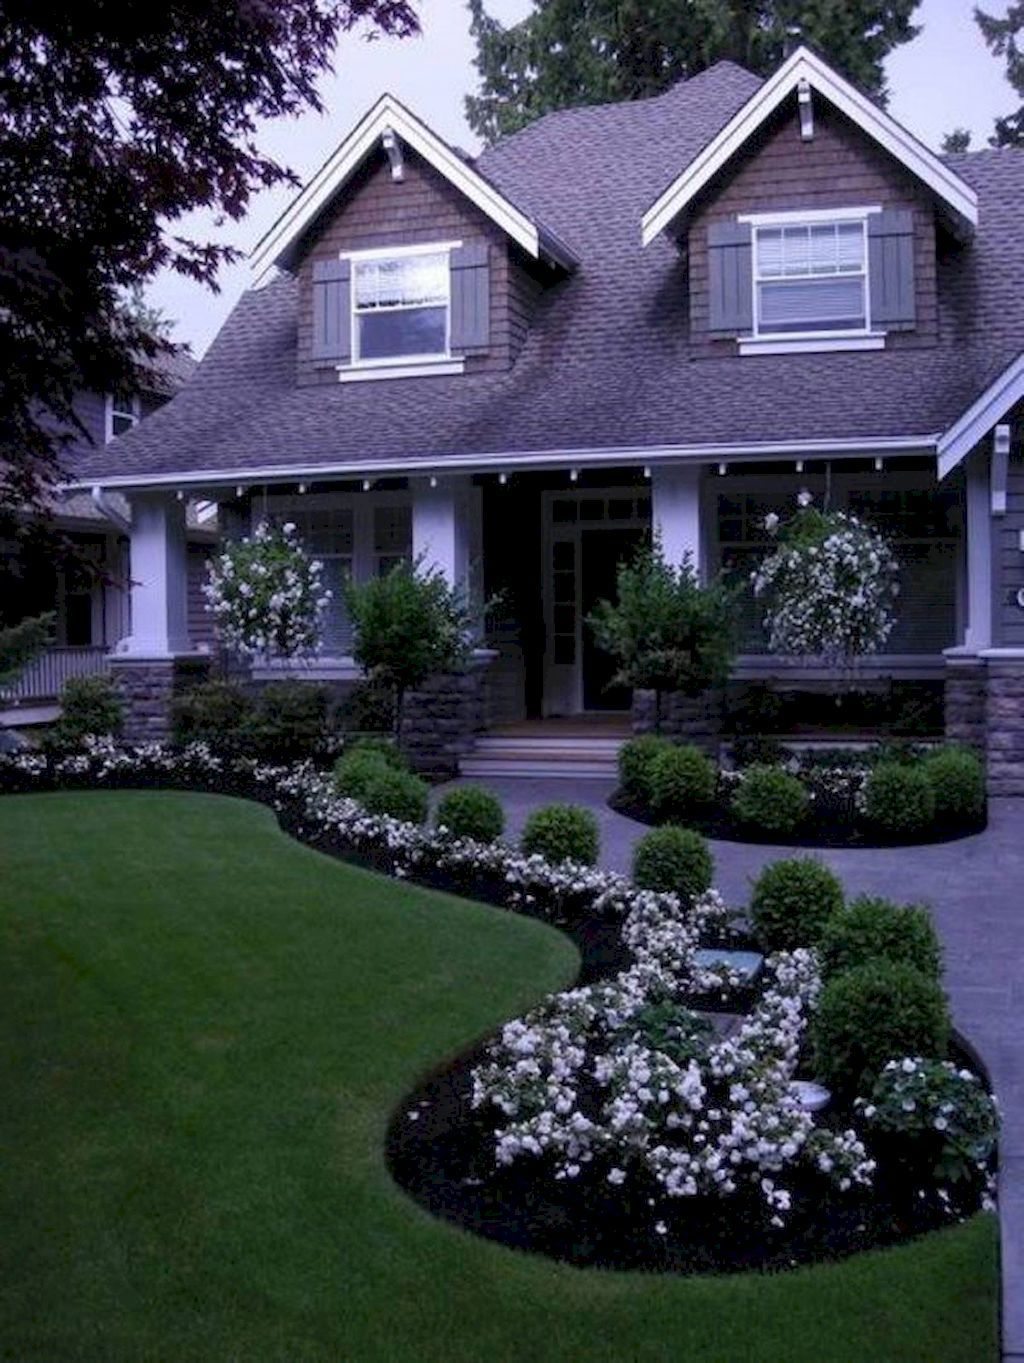 40 beautiful front yard landscaping ideas yard for Front yard garden design plans